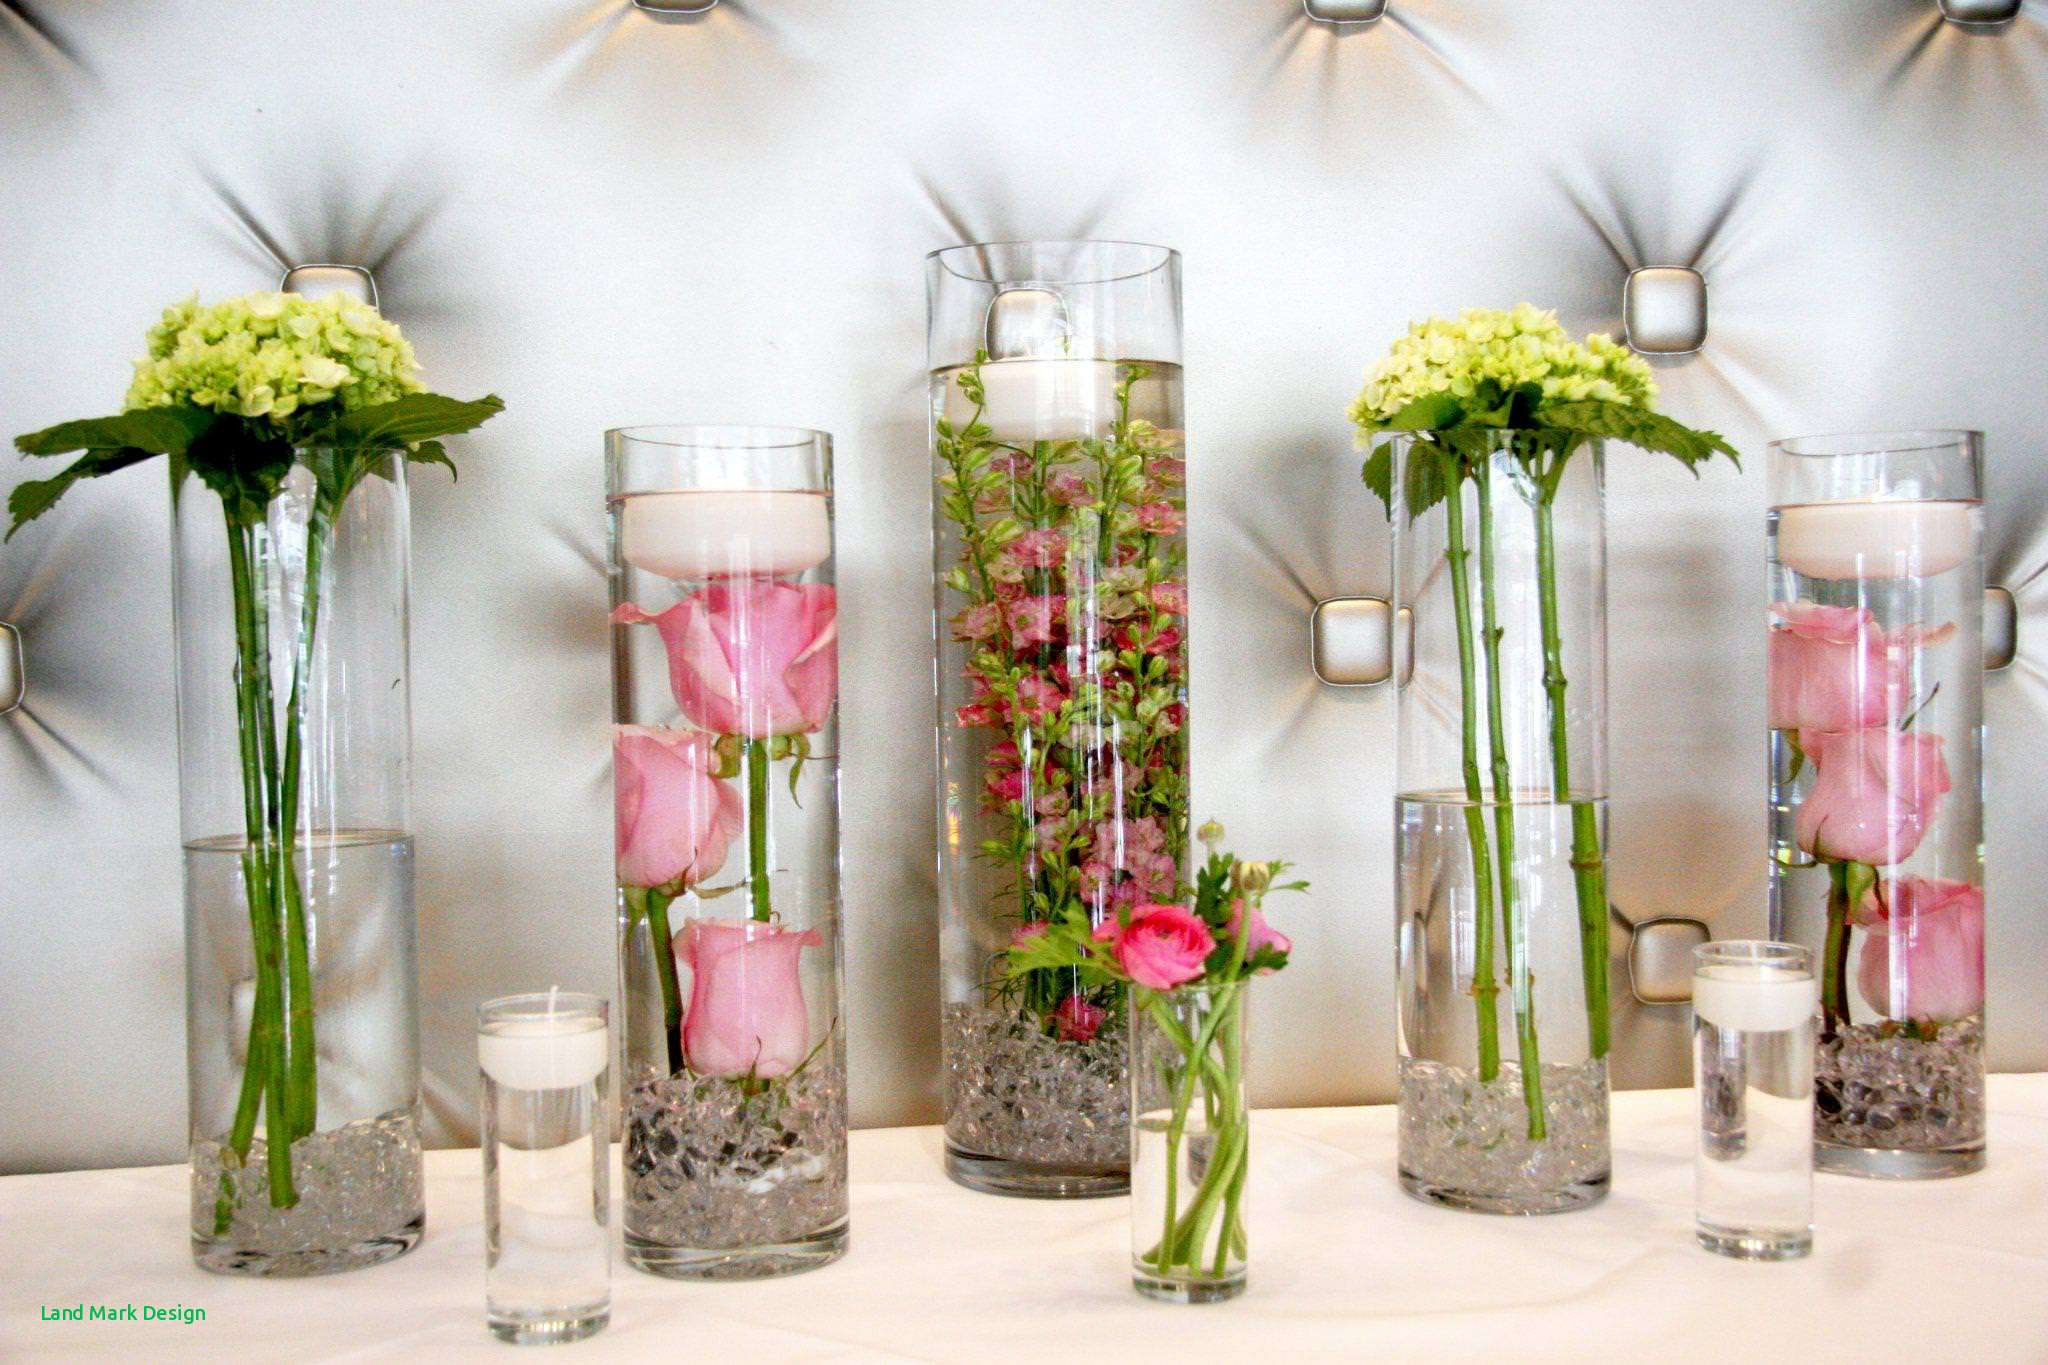 tall floor vases walmart of large flower vase design home design pertaining to floor decor vase tall ideash vases large arrangement ideas fill a substantial with of led branches